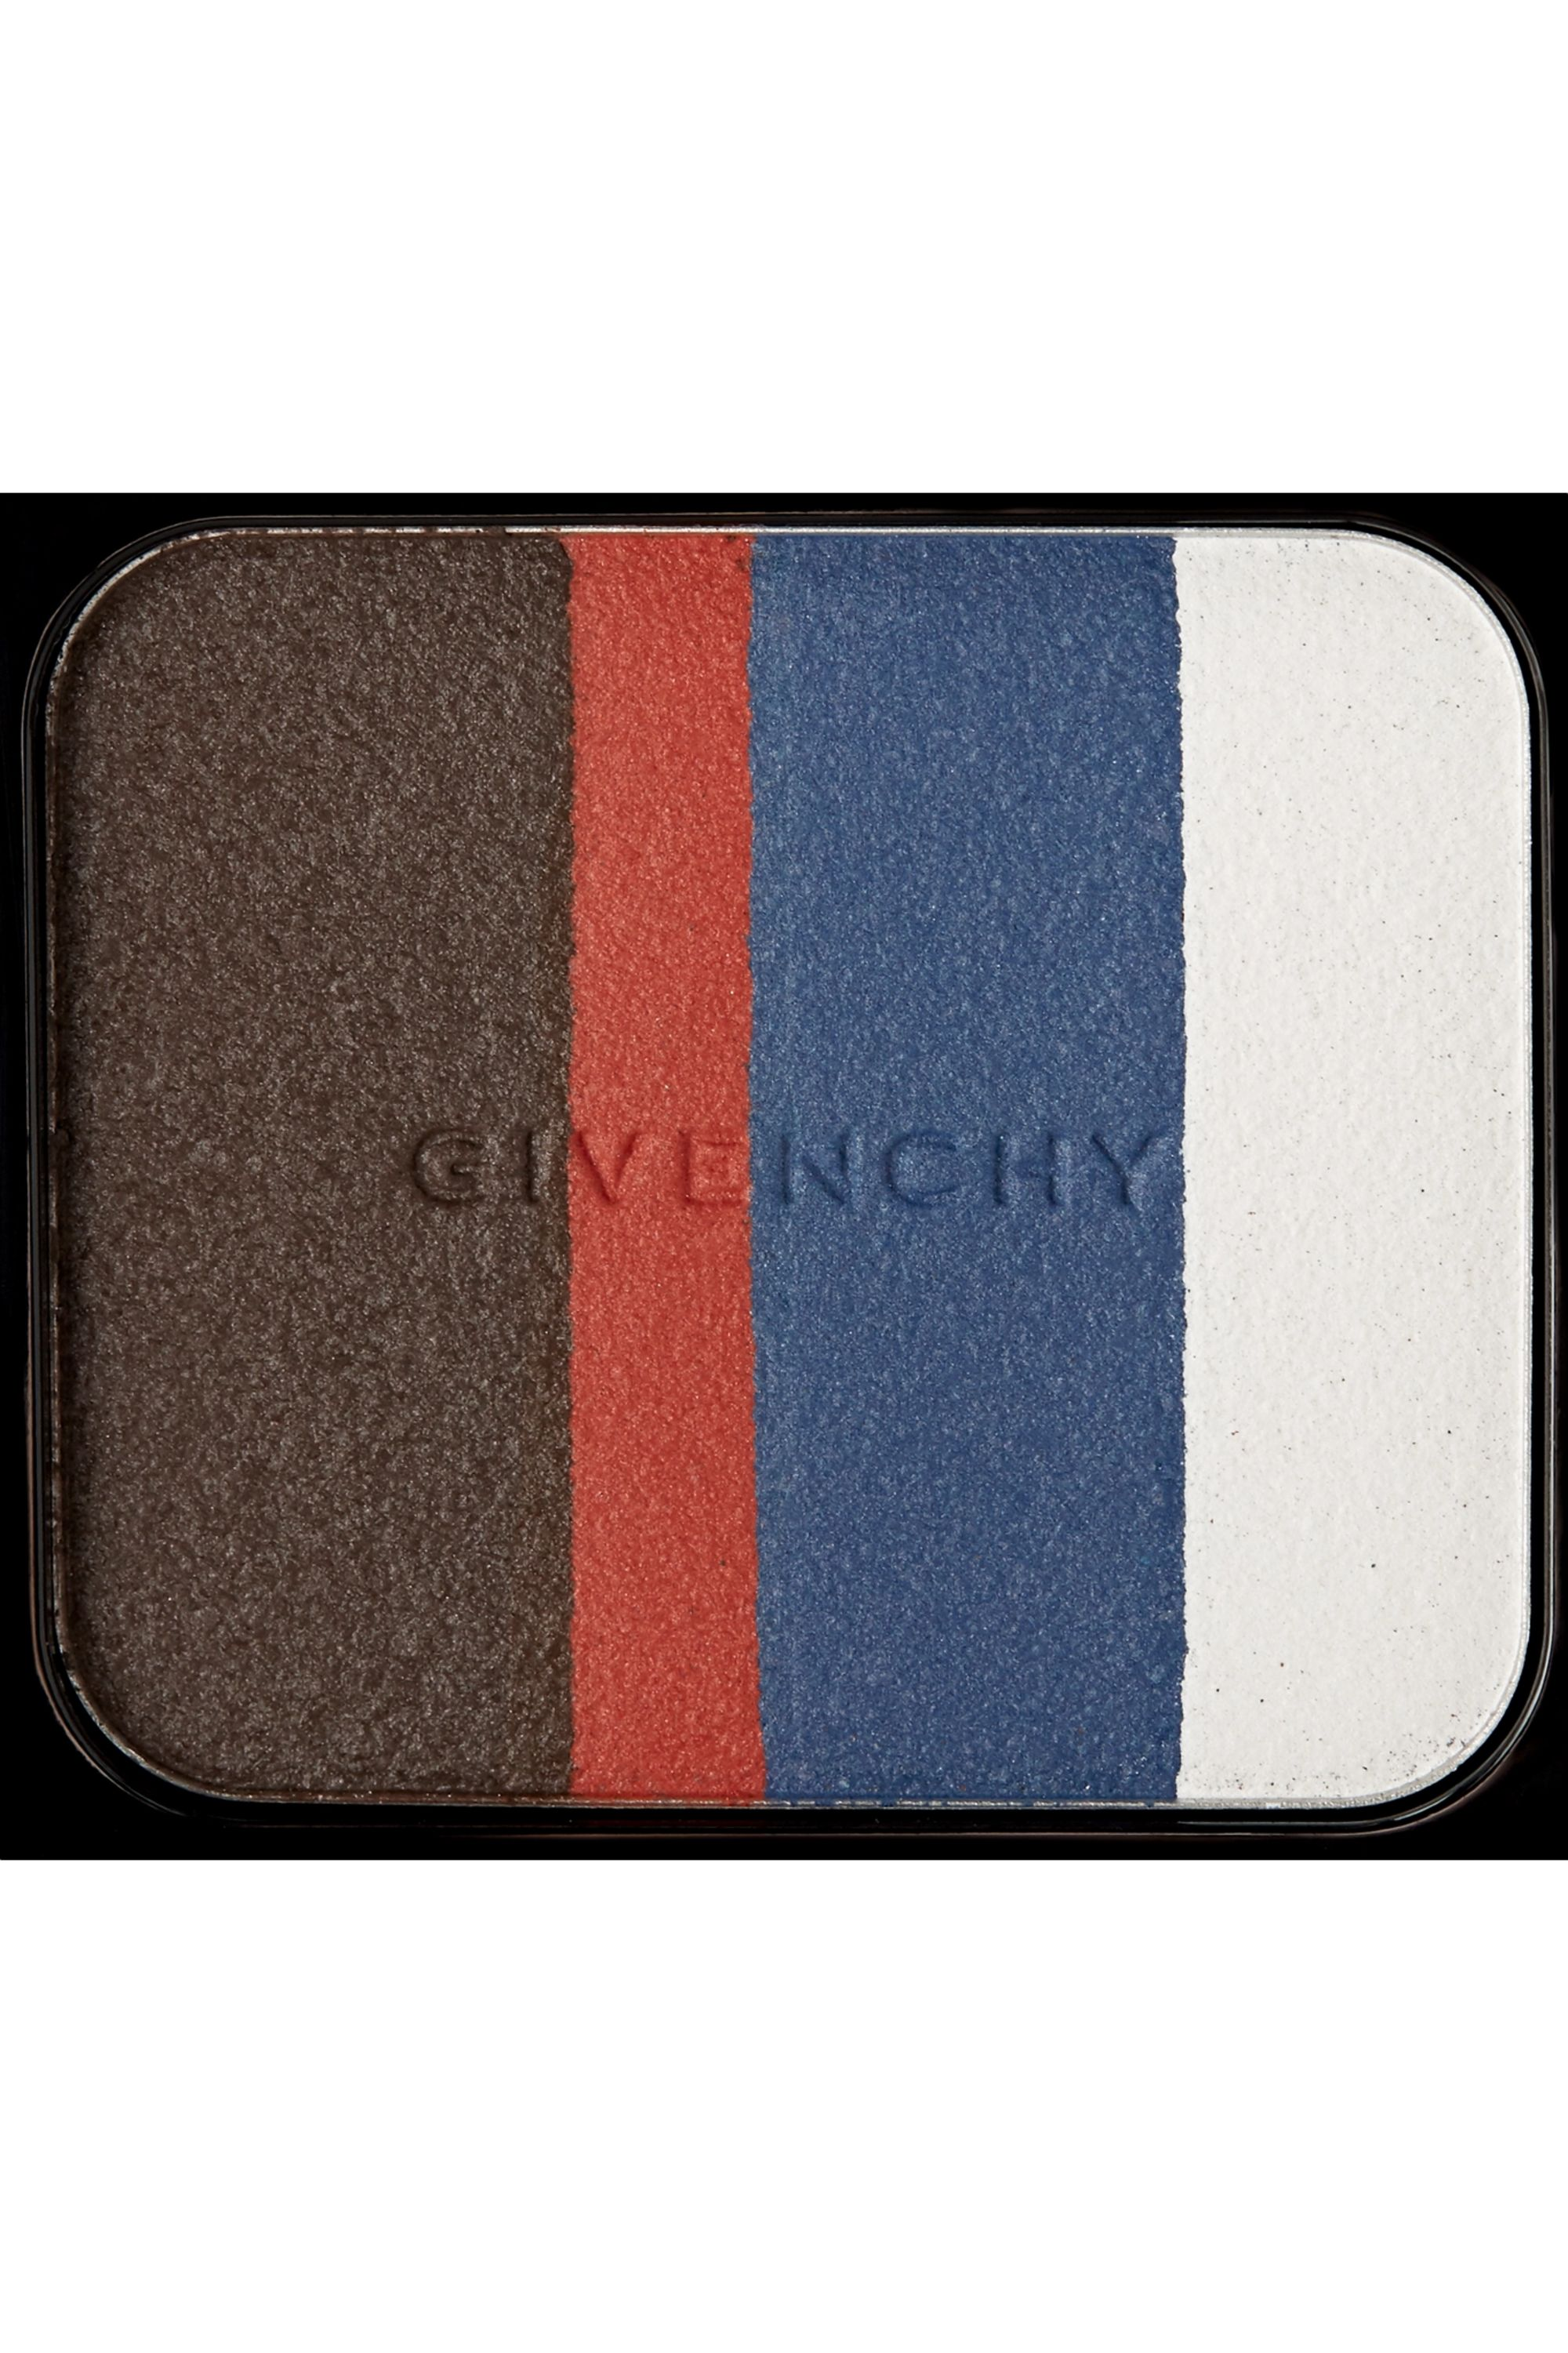 Givenchy Beauty Atelier Couture Eye Palette